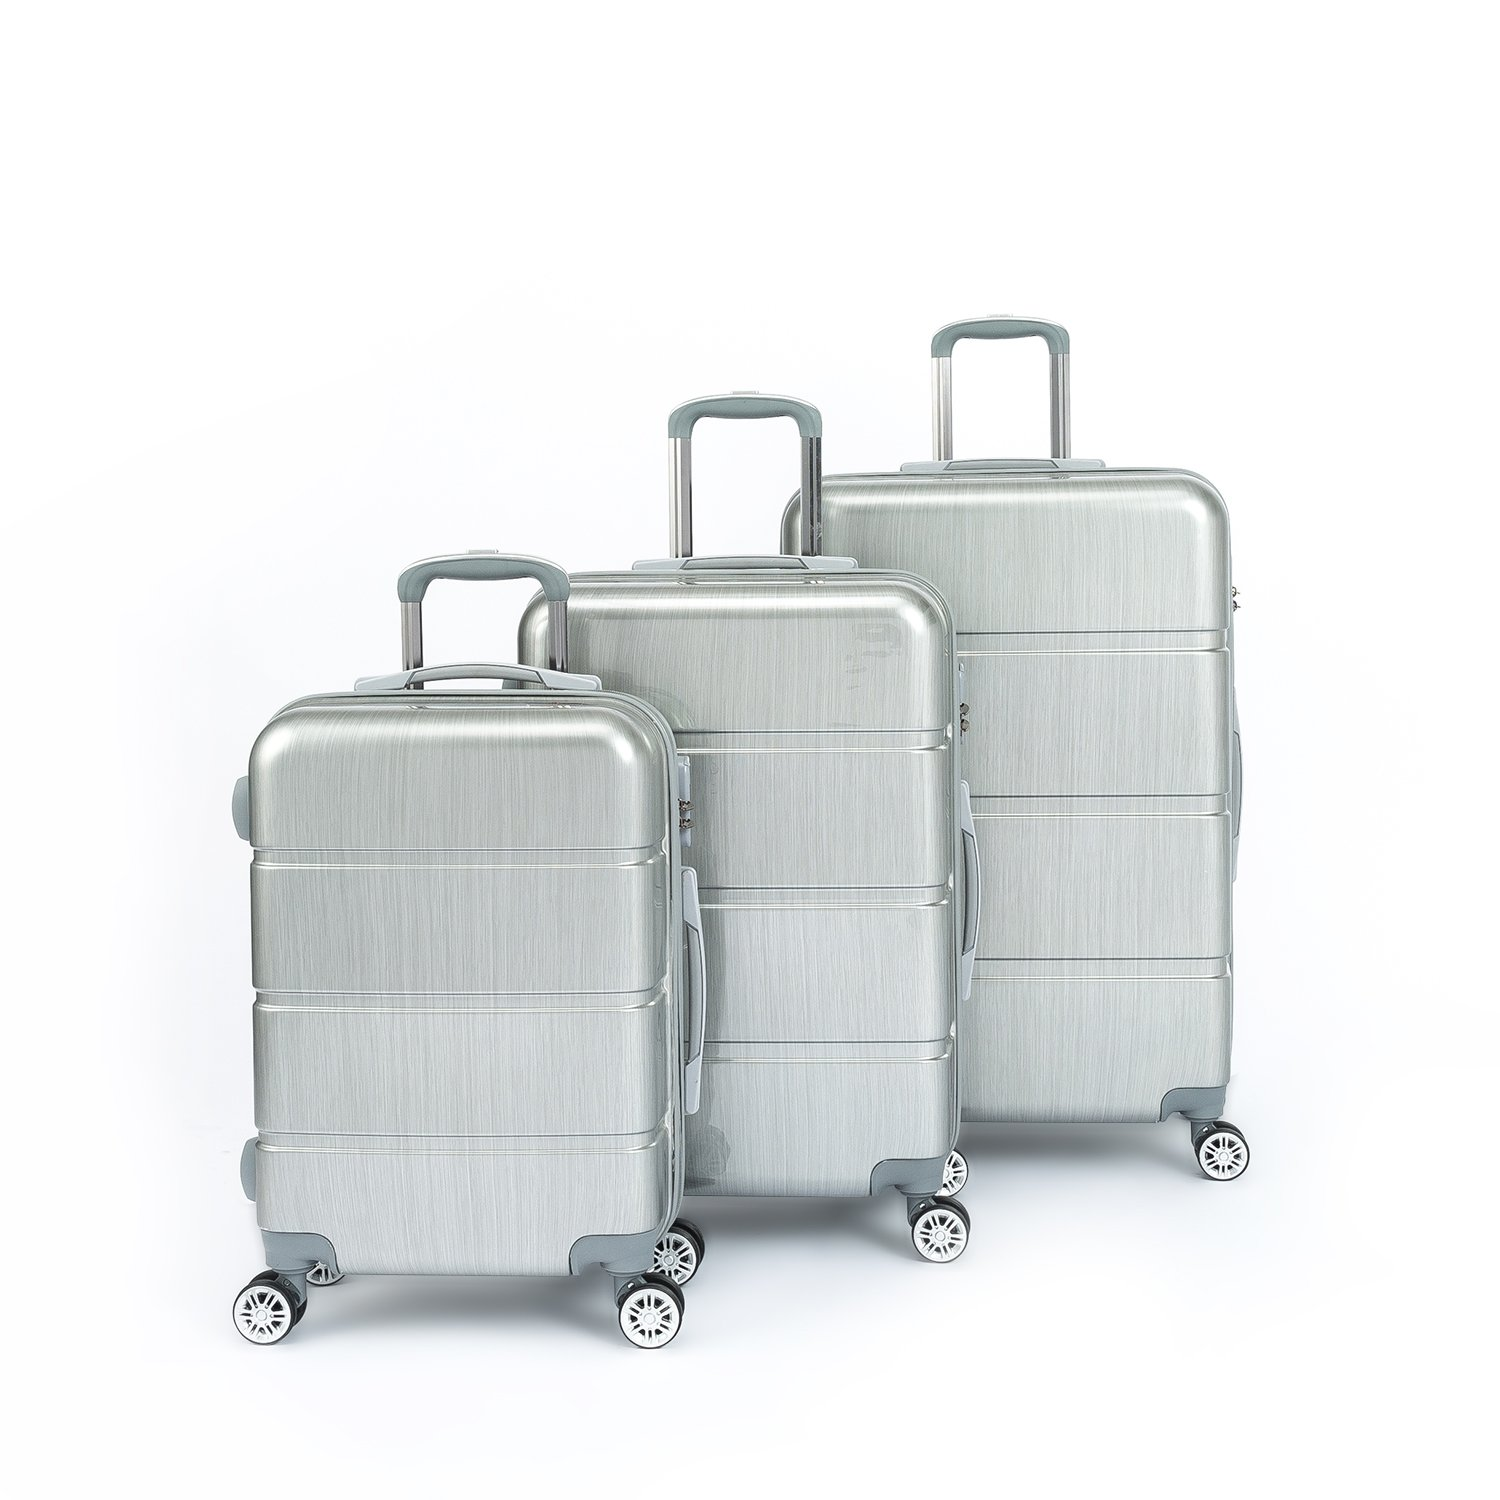 Compaclite Passenger ABS + PC 3 Piece Luggage Set Lightweight Spinner Suitcases, Silver by Compaclite